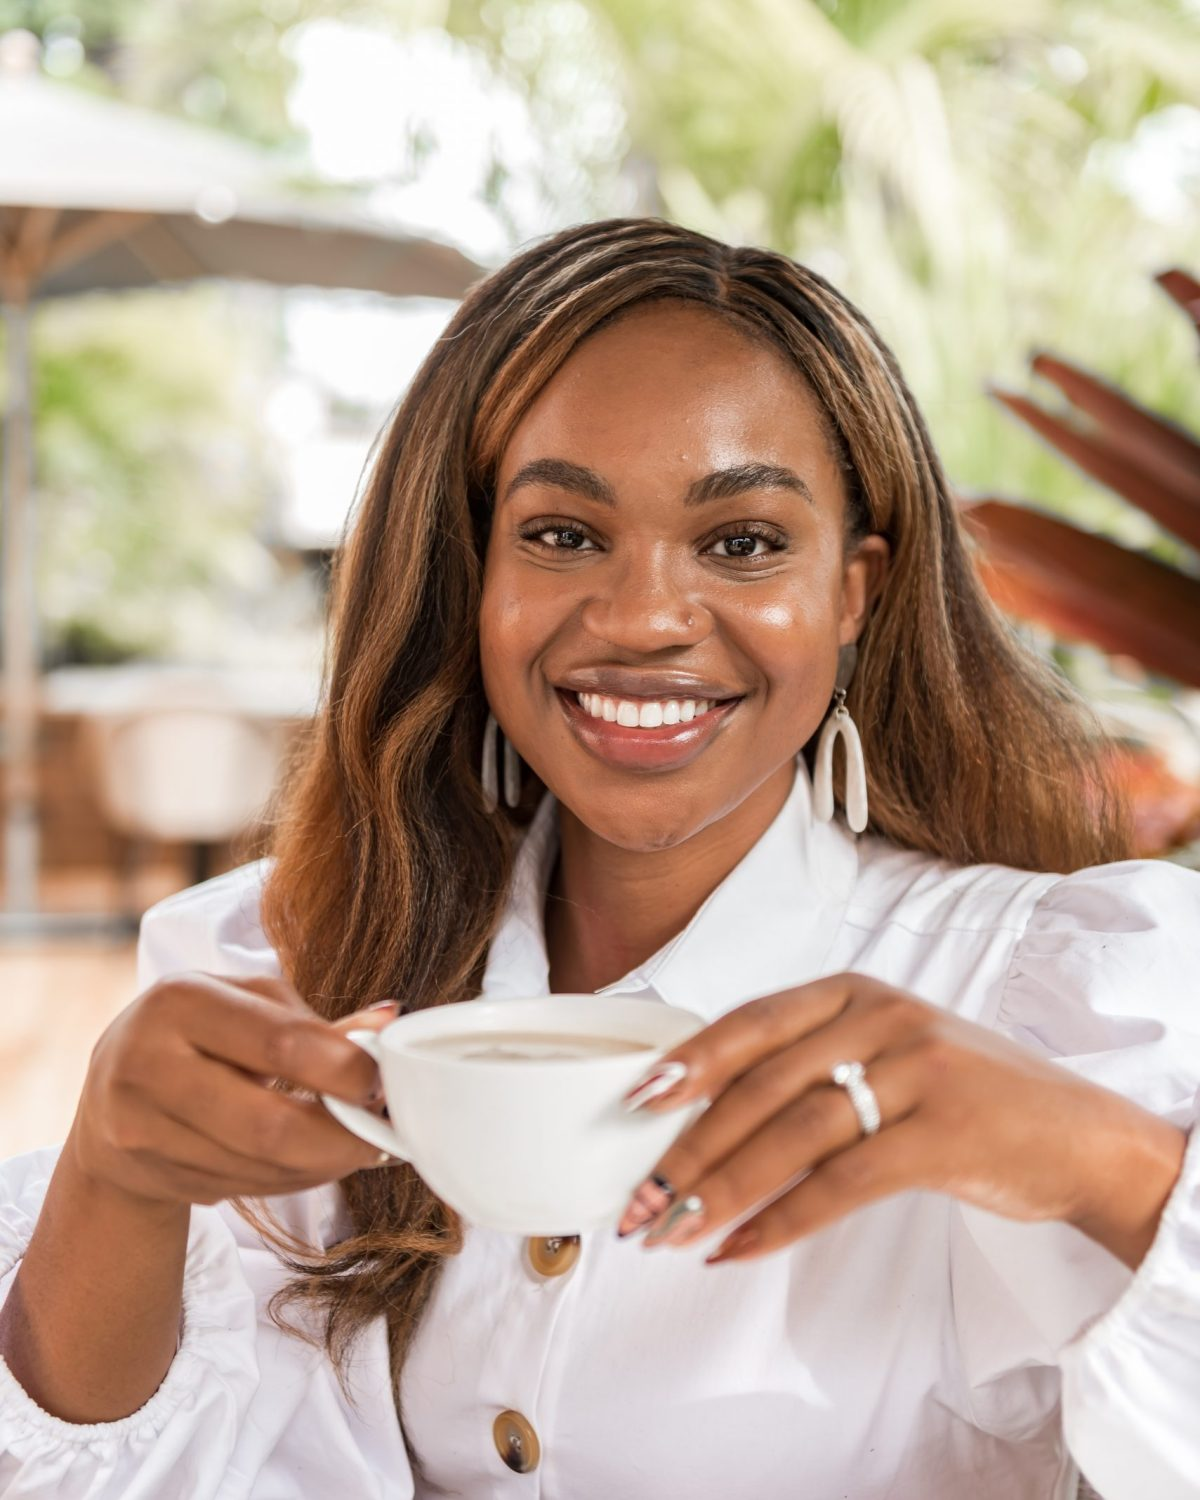 Ijeoma Kola smiling with tea cup in hands, wearing white shirt - Blog on social media and mental health